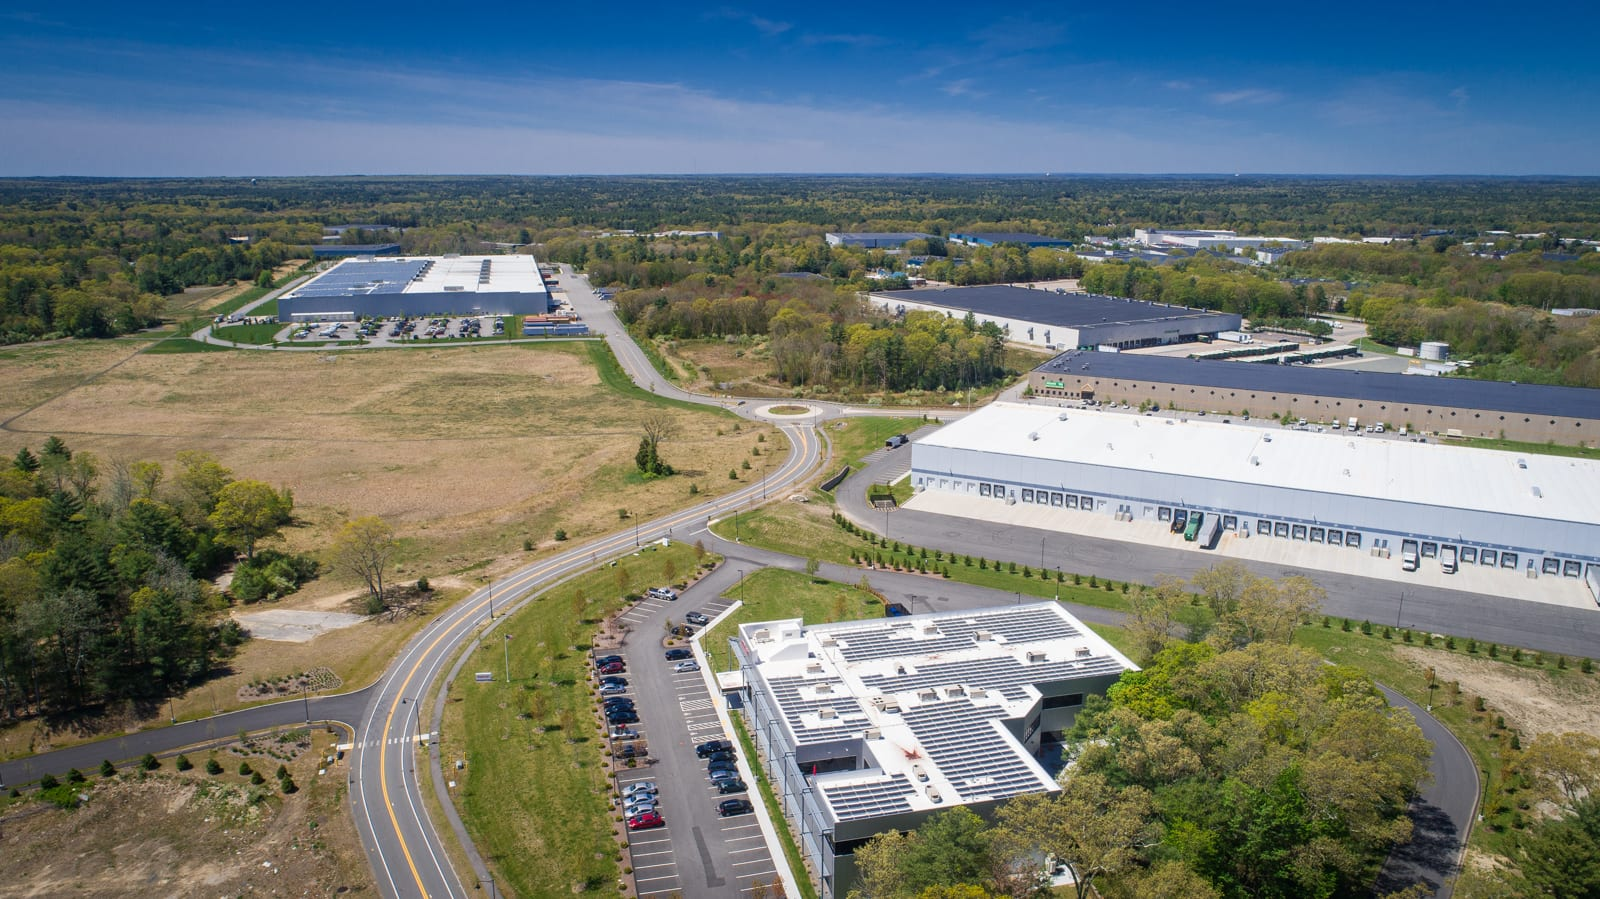 Drone photo of Taunton's Myles Standish Industrial Park Phase V Expansion.